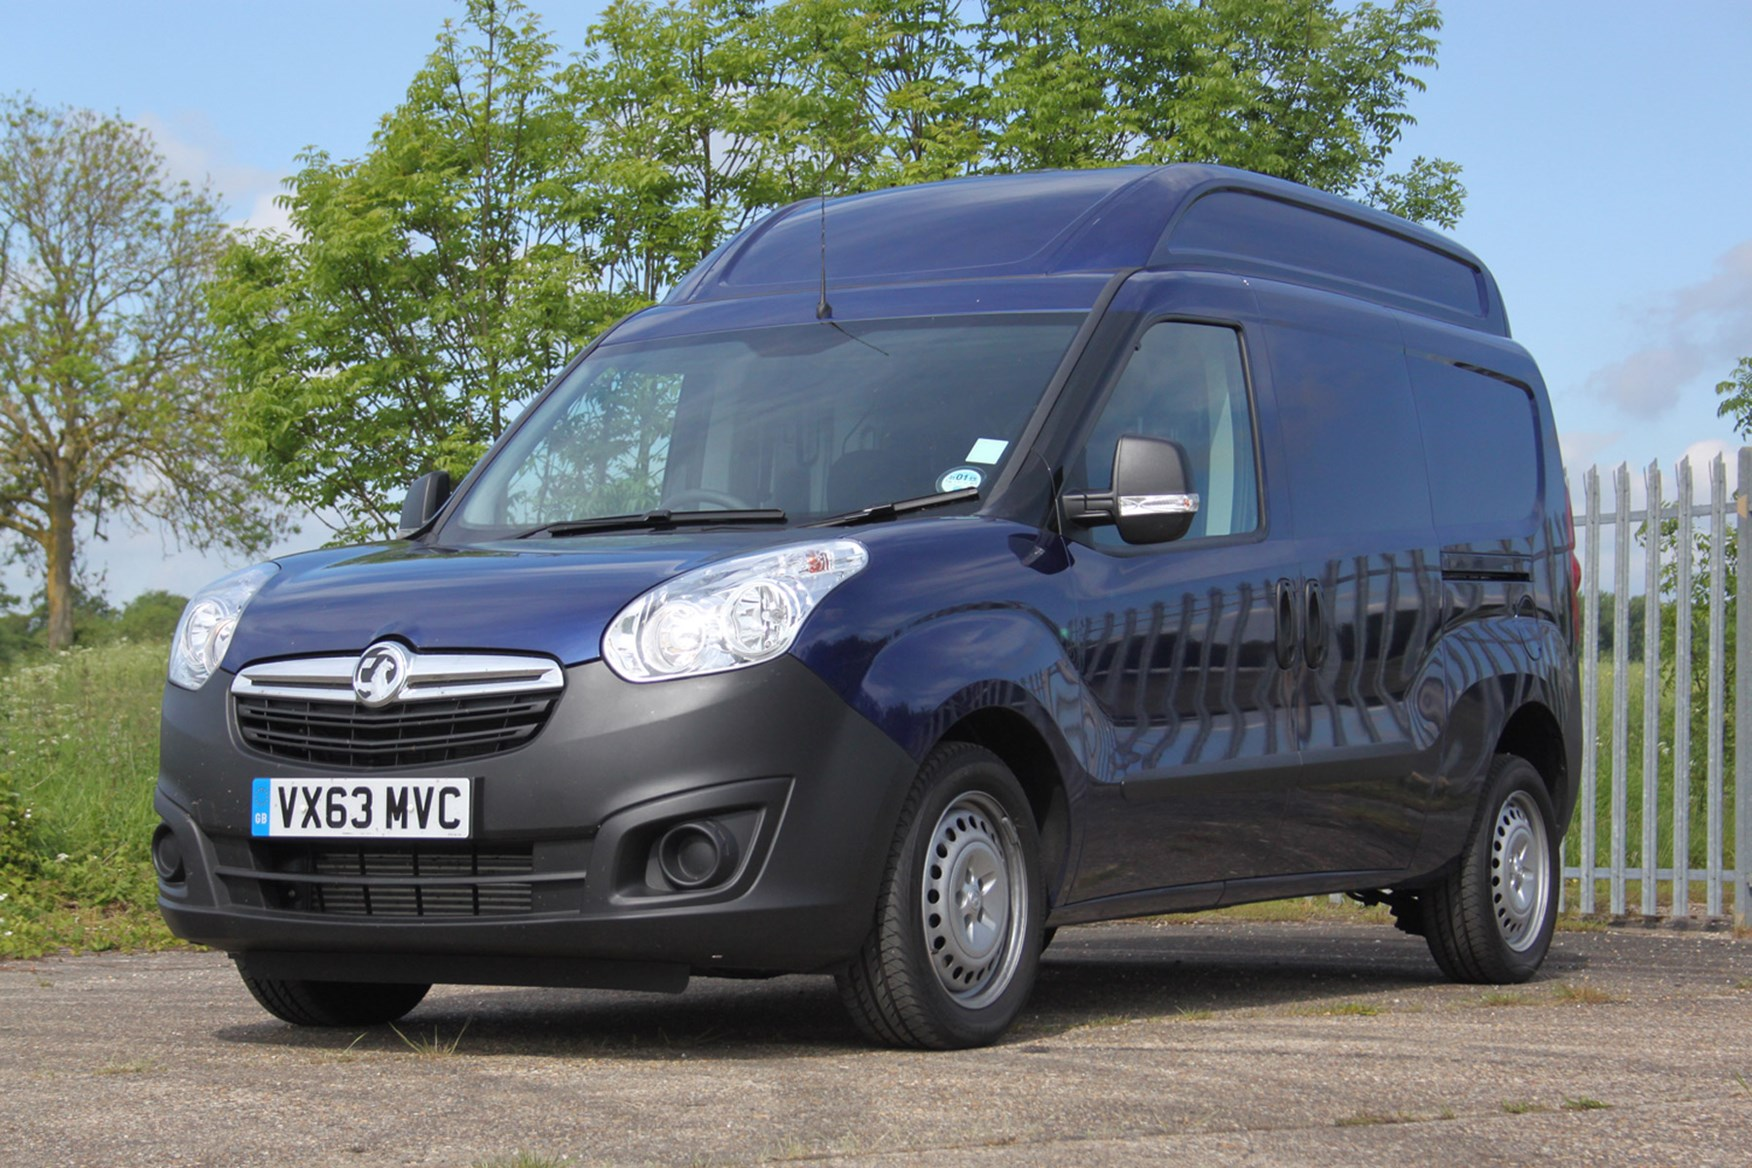 Vauxhall Combo full review on Parkers Vans - exterior